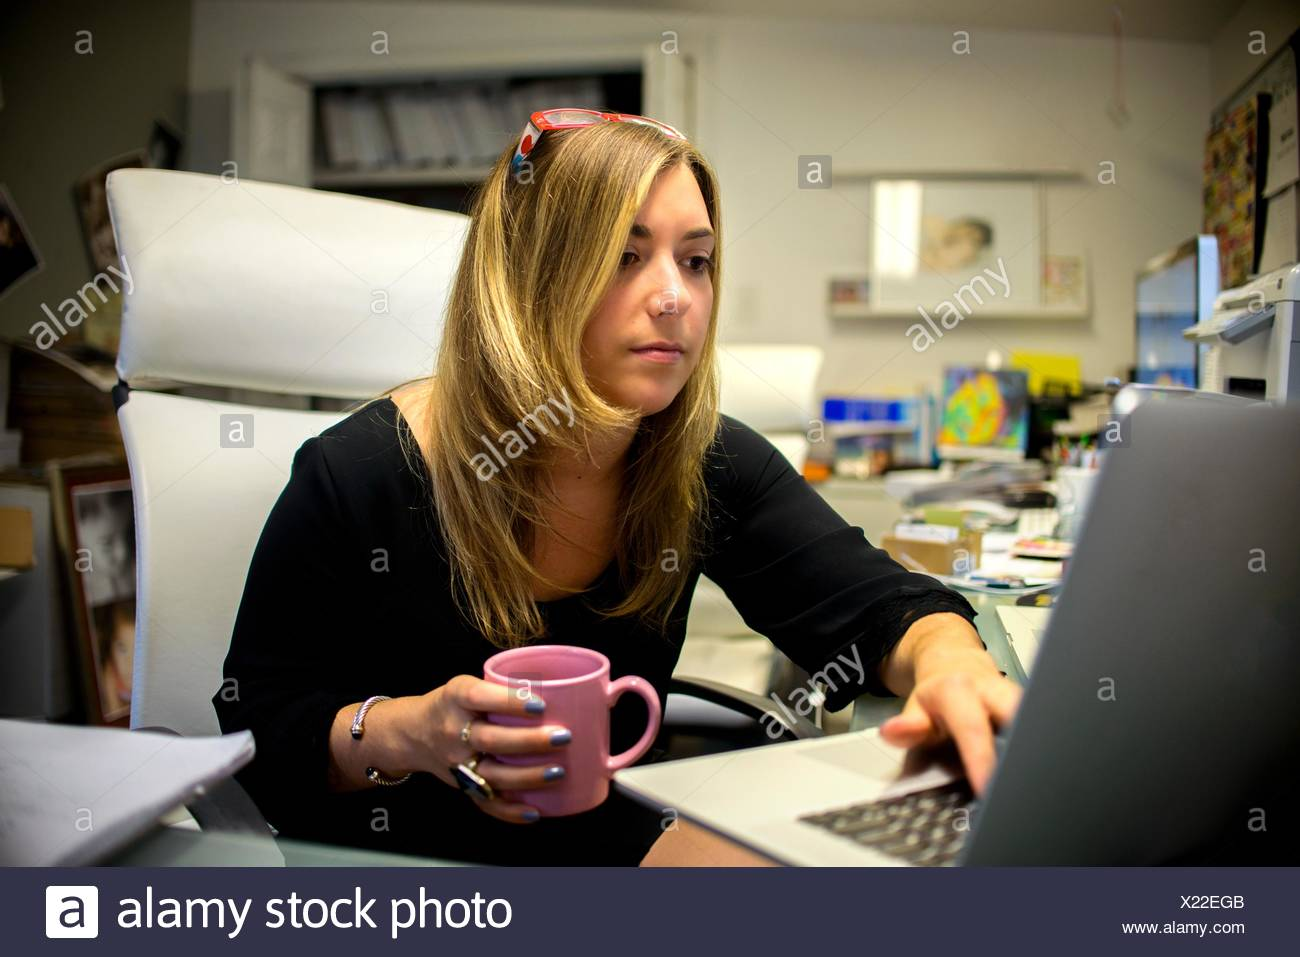 Young woman in office, sitting at desk, holding coffee cup, using laptop - Stock Image